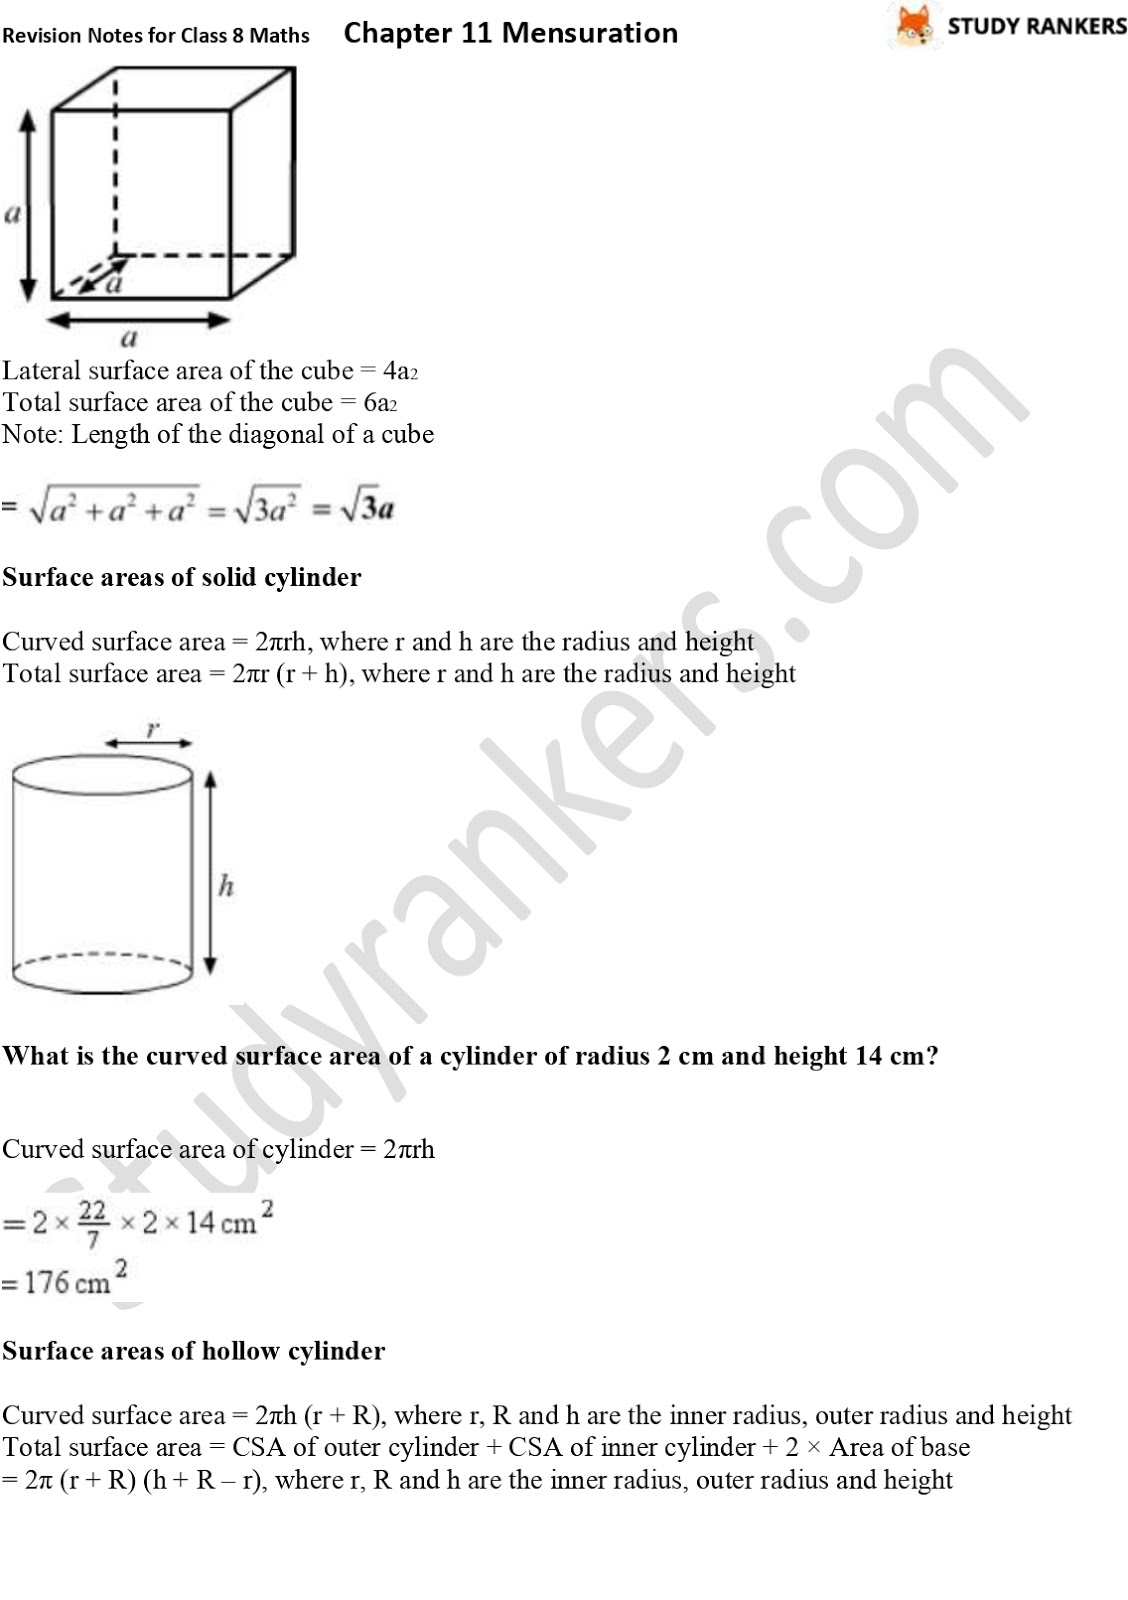 CBSE Revision Notes for Class 8 Chapter 11 Mensuration Part 4